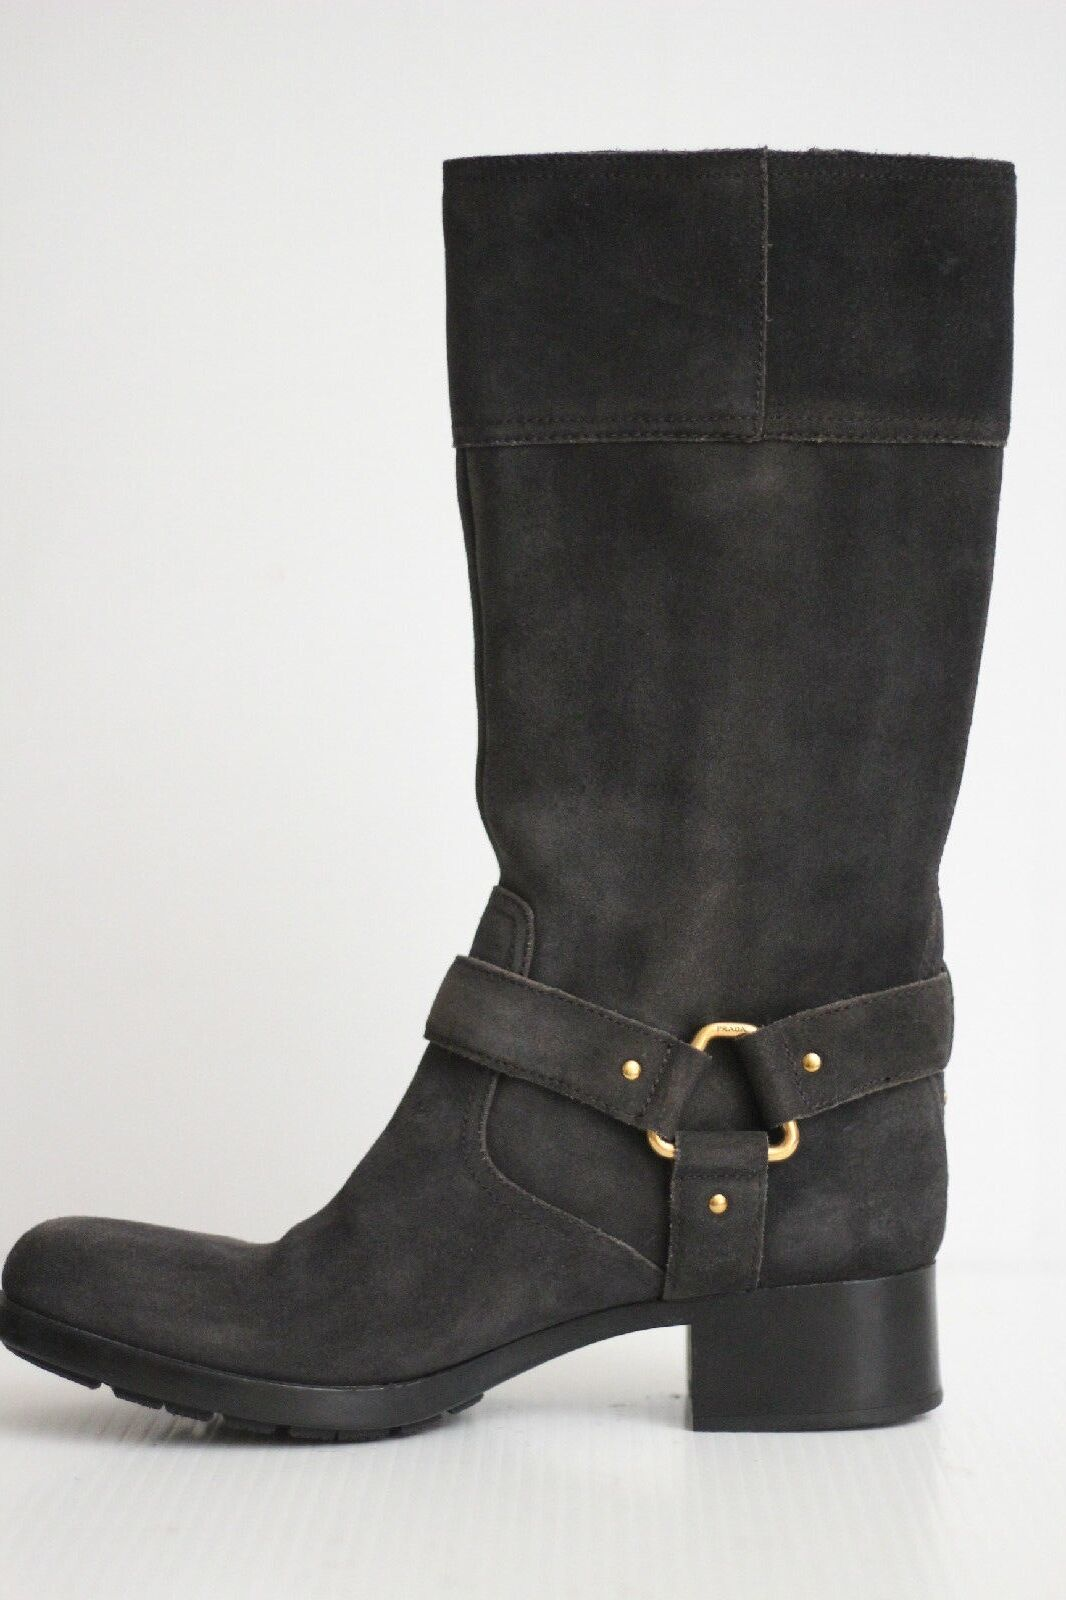 Prada Gray Moto Motorcycle Mid Boot Buckle Harness - Charcoal Gray Prada - Size 8US (Y10) 8788c0